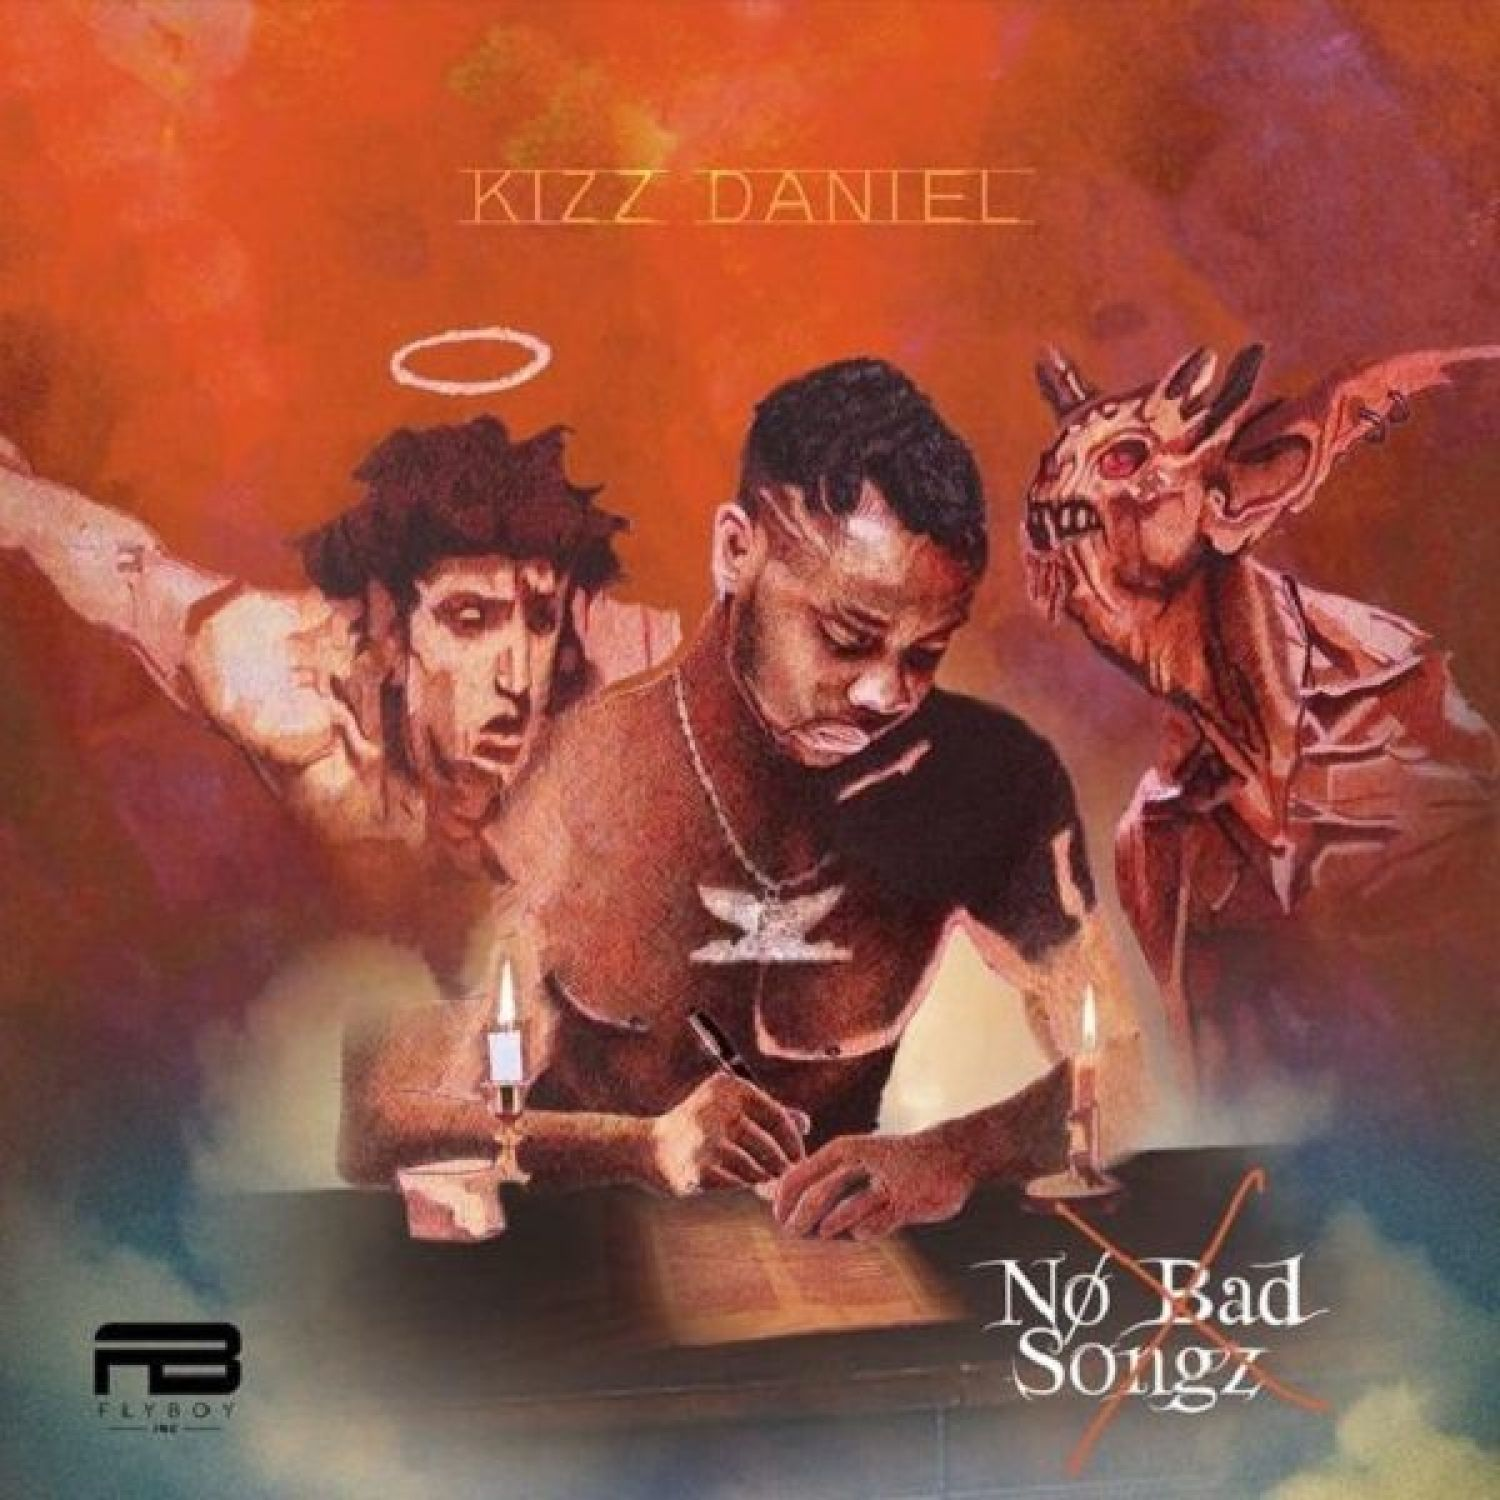 DOWNLOAD MP3: Kizz Daniel ft. Philkeyz – Nesesari AUDIO 320kbps